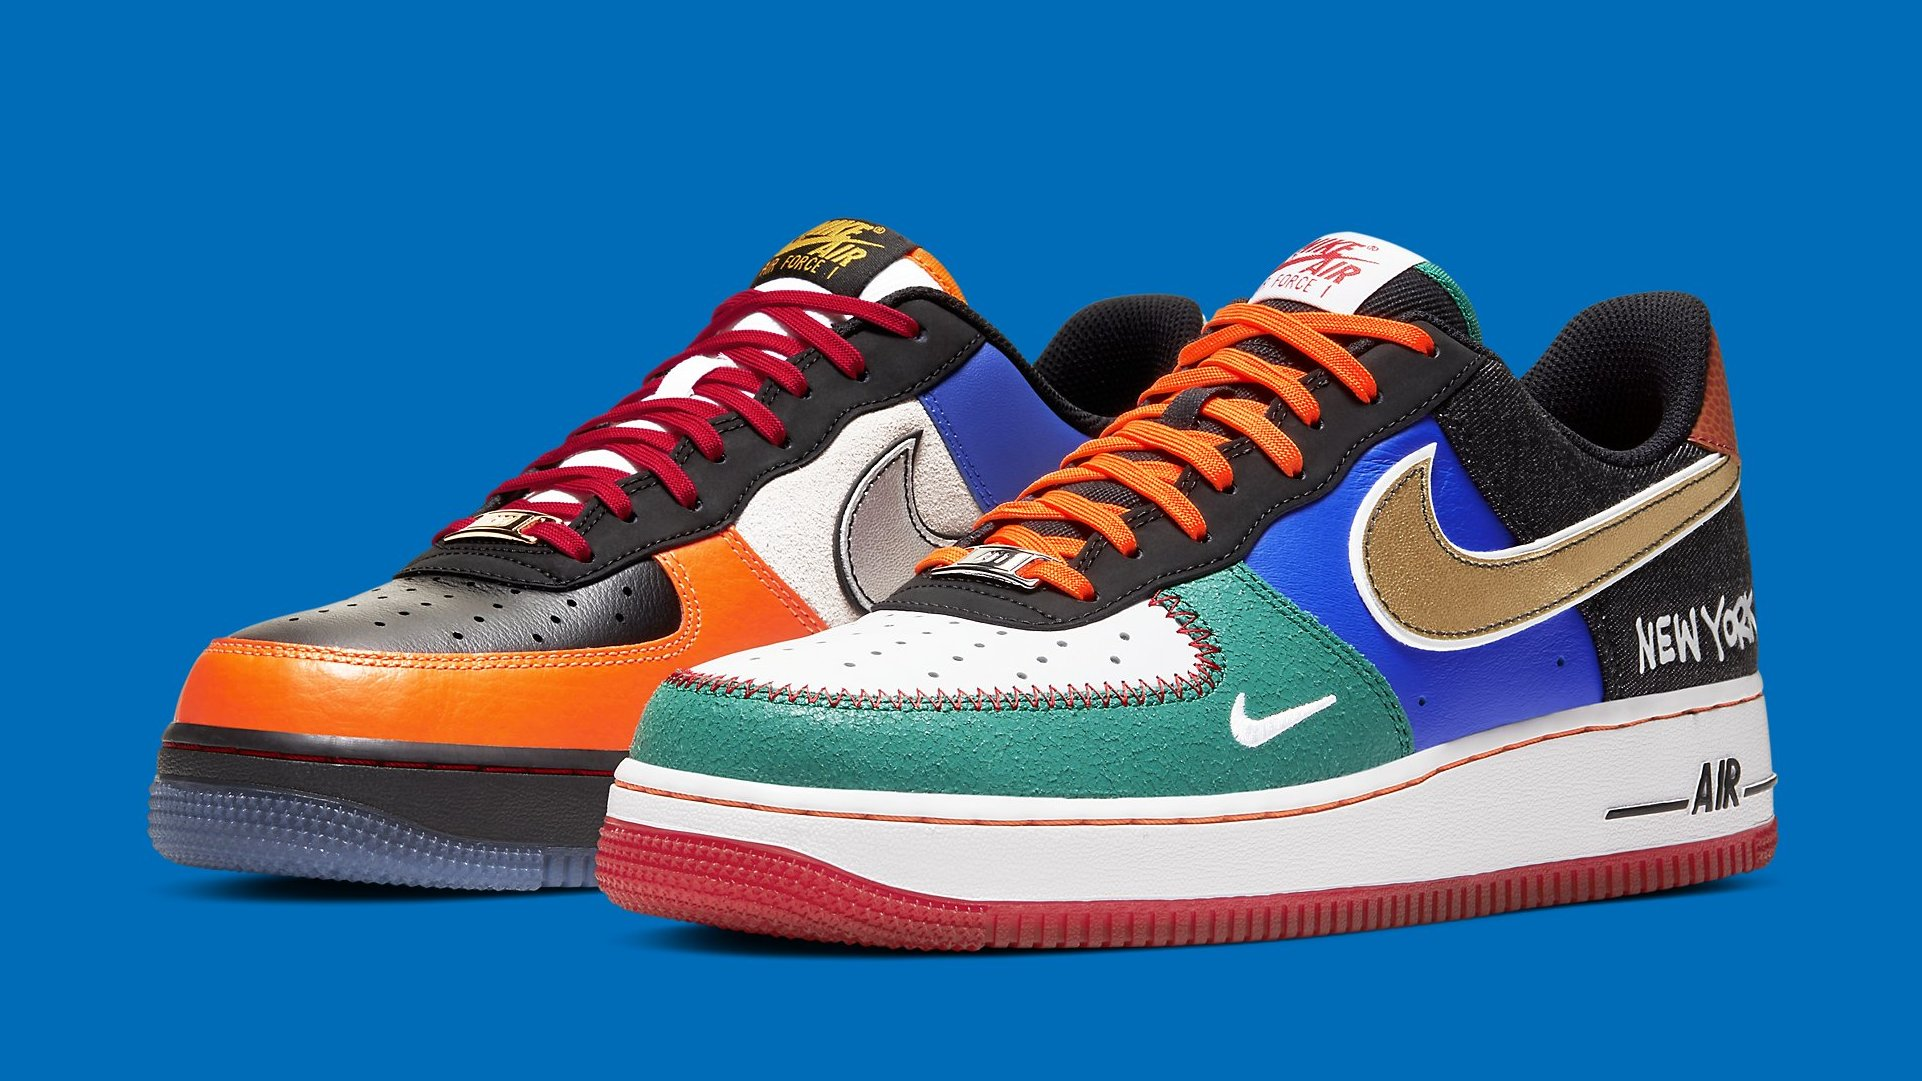 Nike Air Force 1 Low 'What The NYC' Release Date CT3610-100 | Sole ...